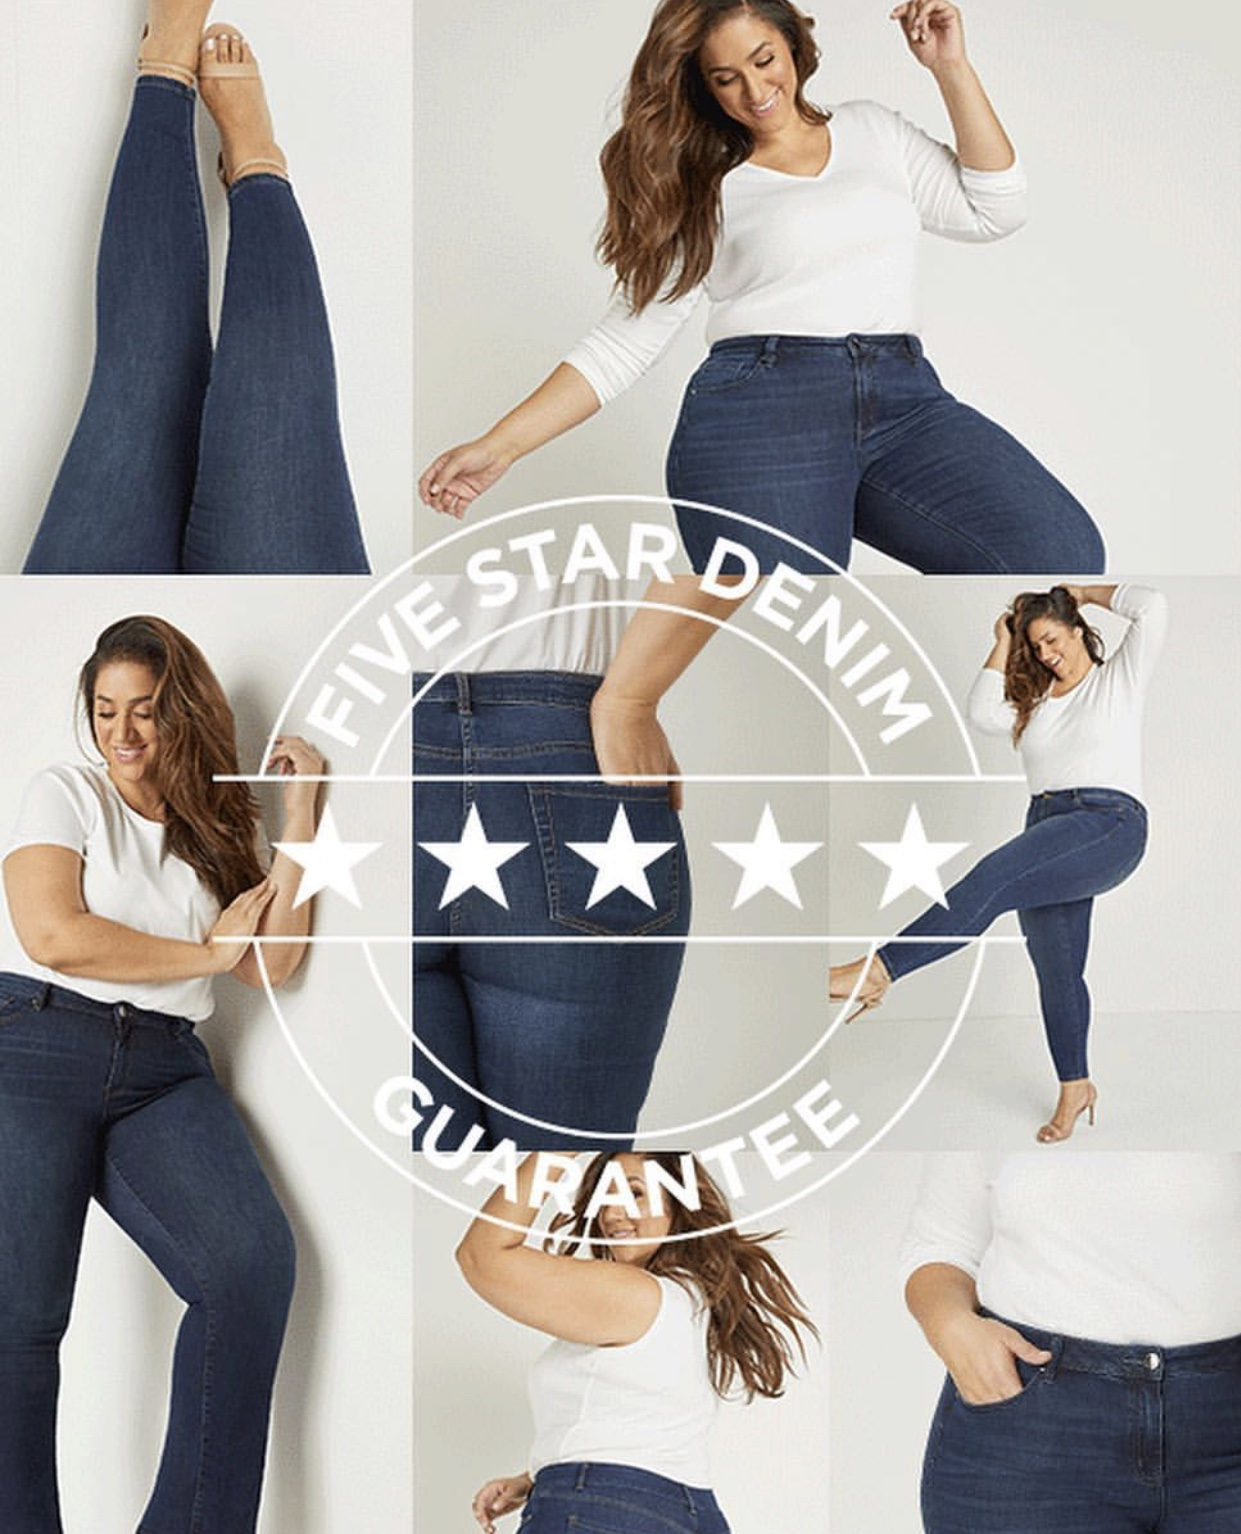 Lane Bryant Denim Campaign